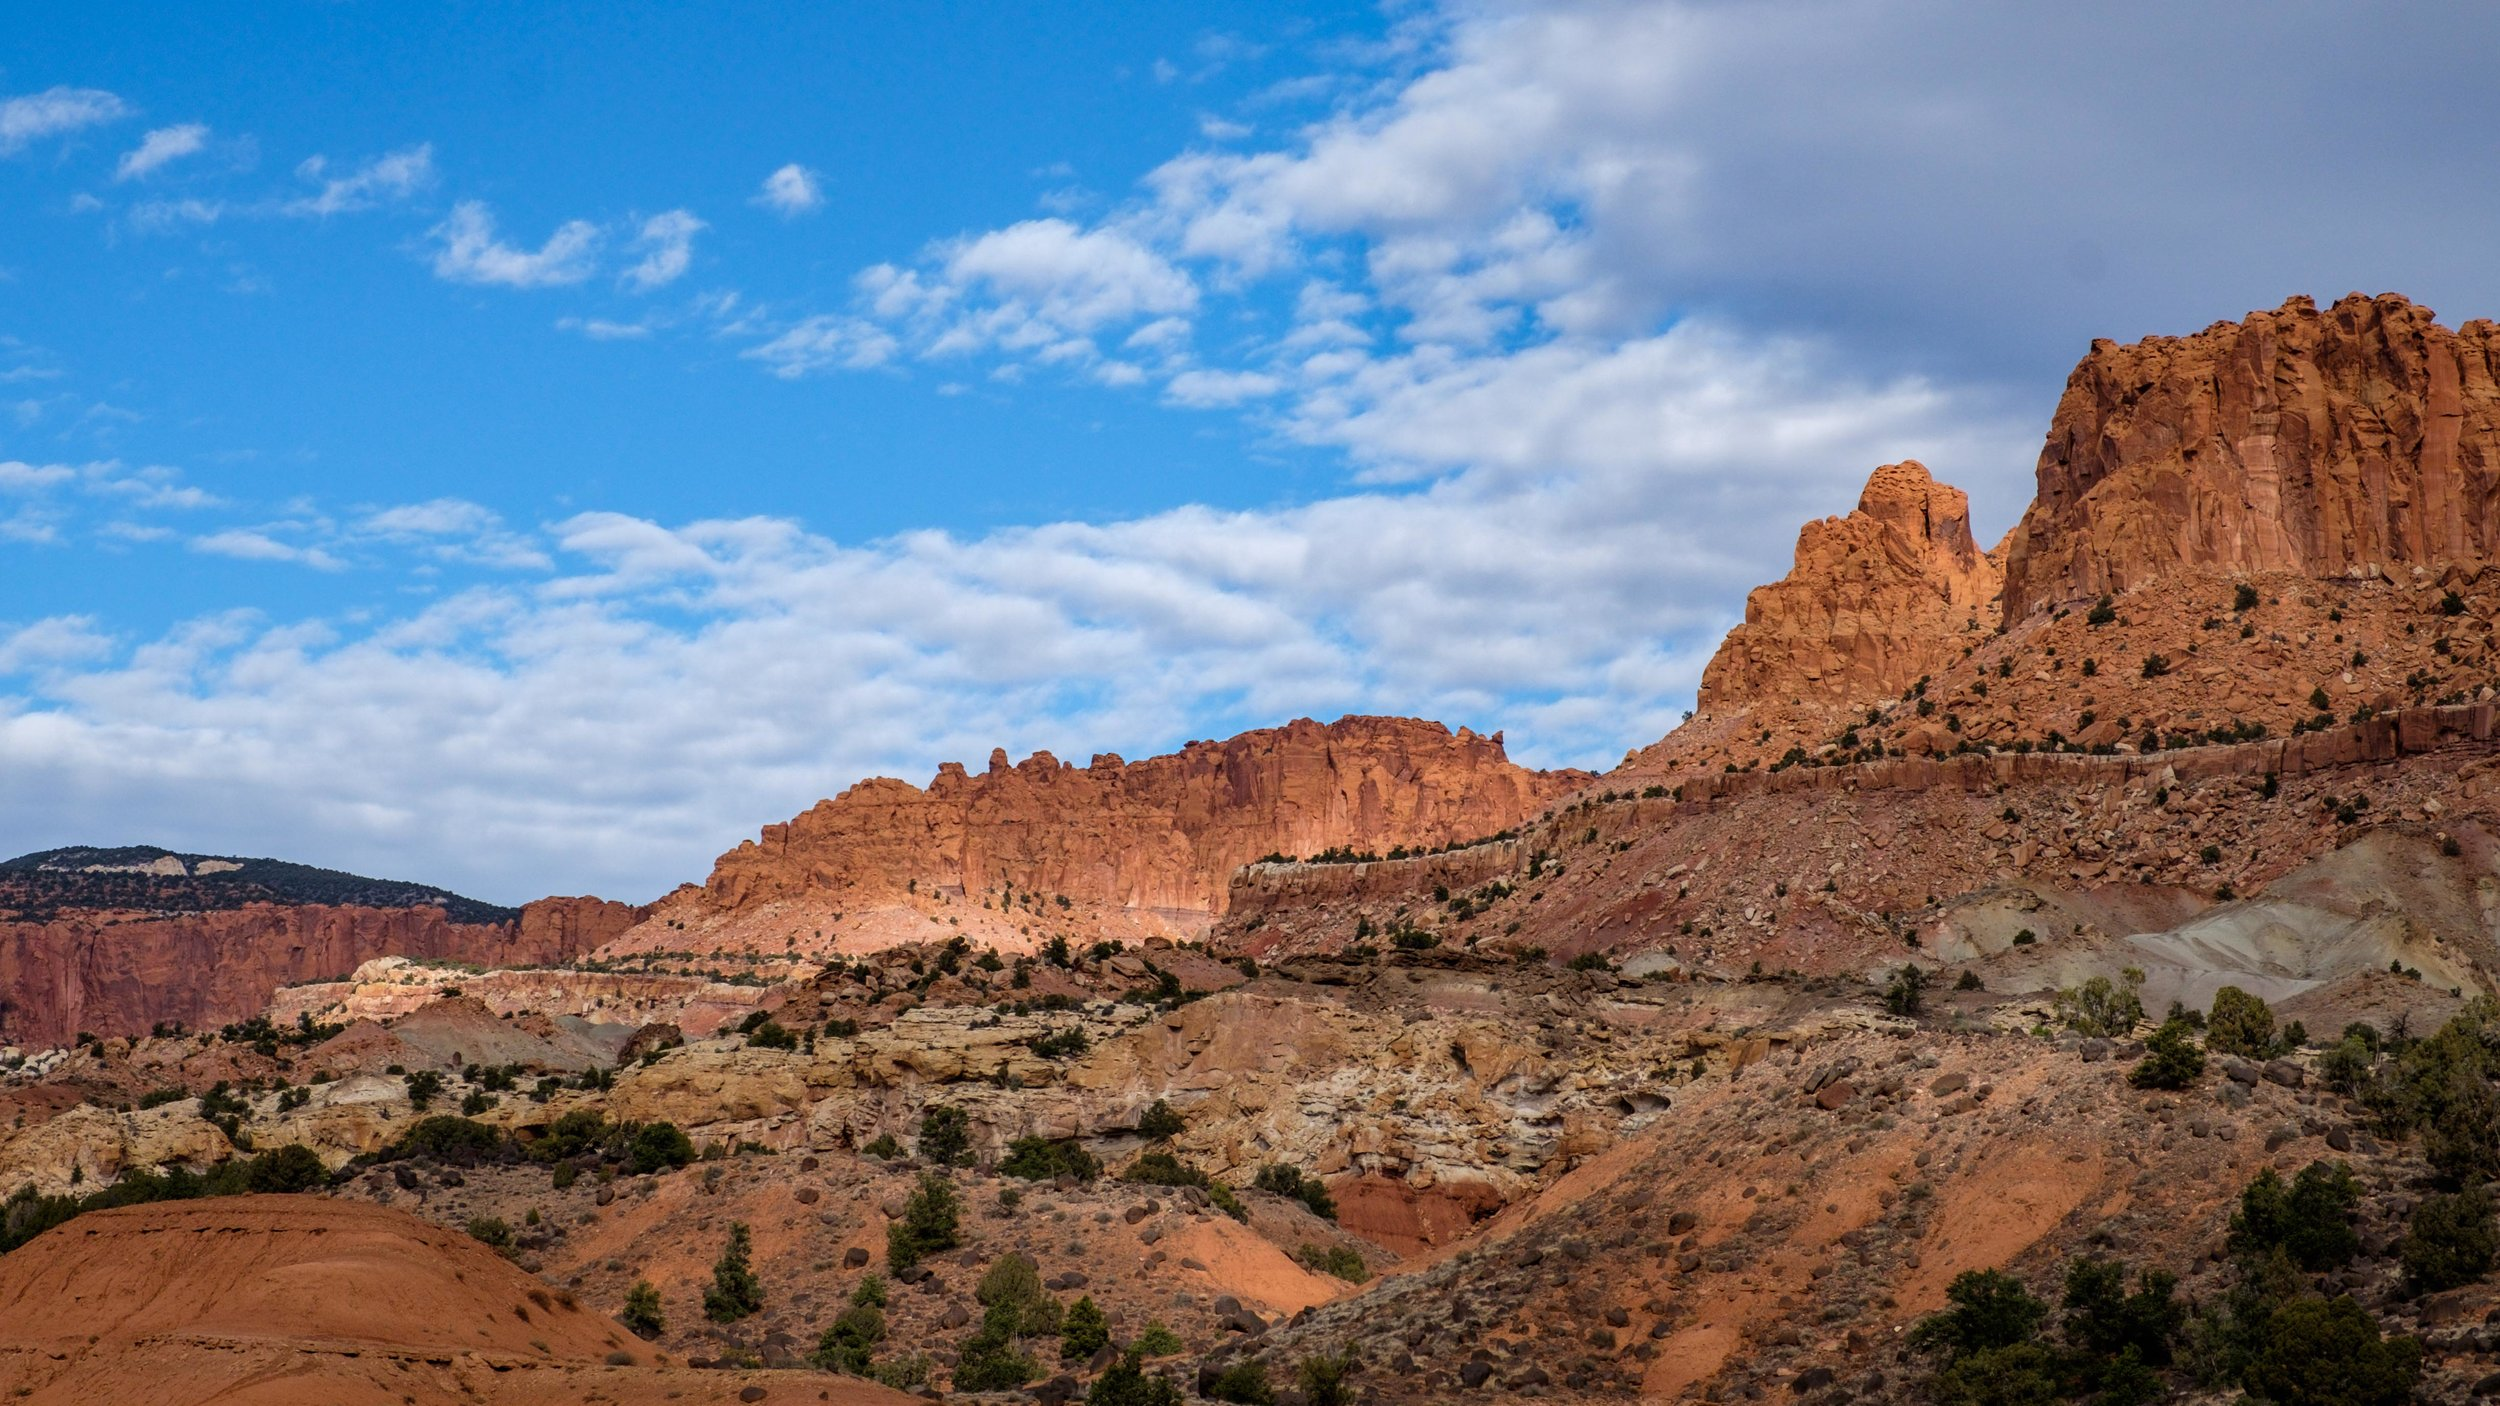 The scenic drive up to Capitol Gorge offers dramatic views.